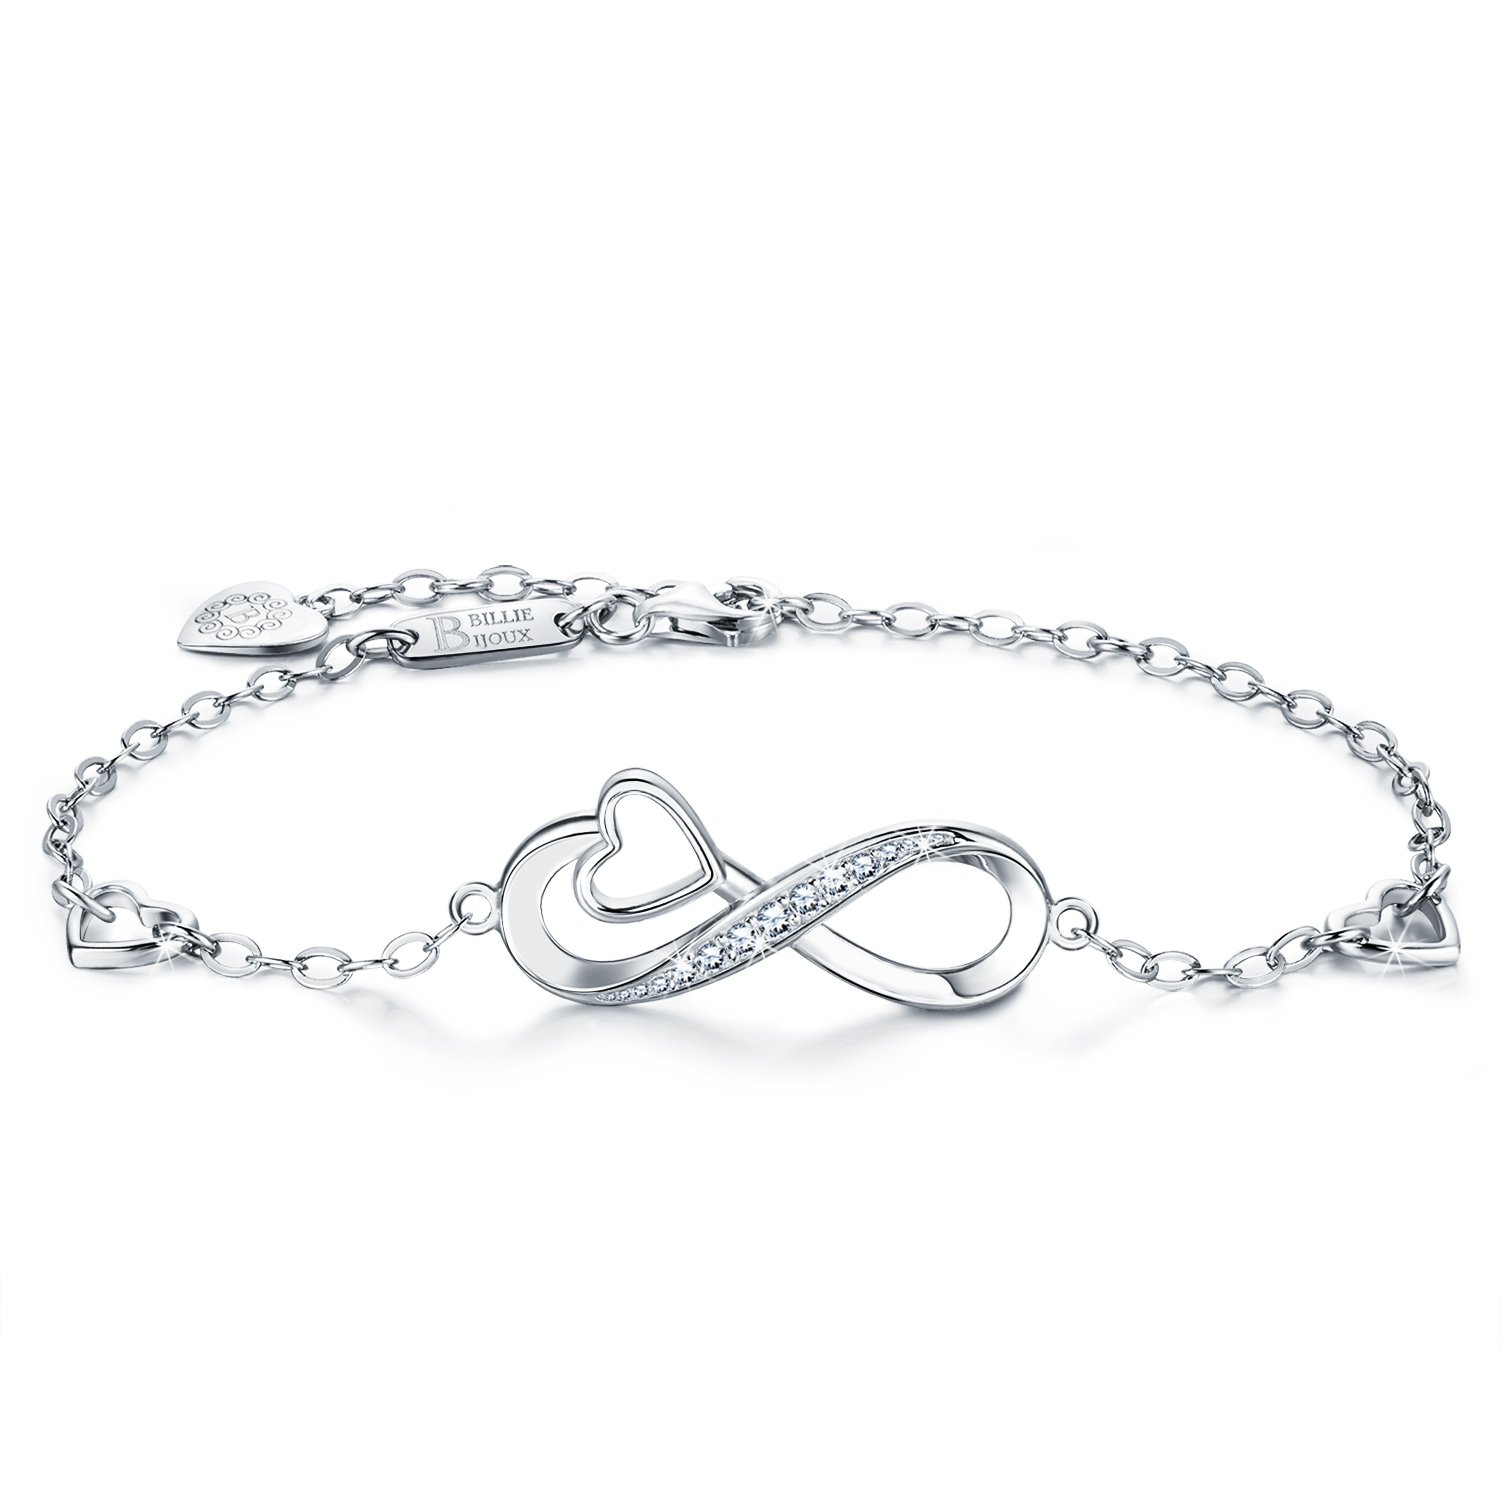 Billie Bijoux 925 Sterling Silver Infinity Heart Endless Love Symbol Charm Adjustable Bracelet White Gold Plated Women' s Gift for Christmas Day BBB001-A